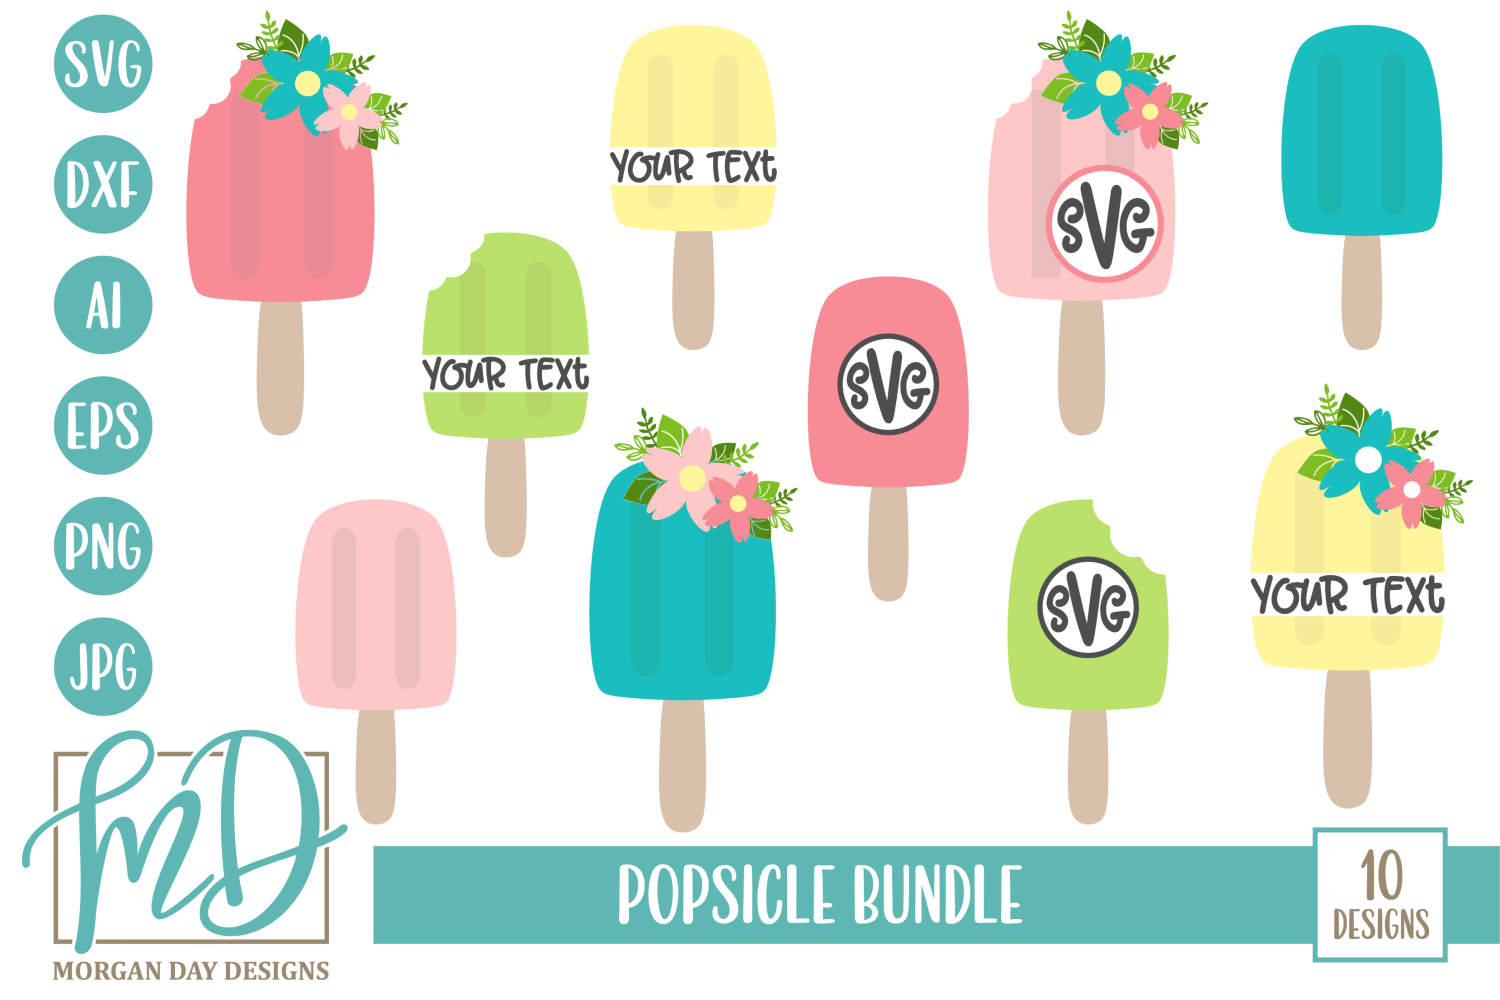 Download Free Popsicle Bundle Graphic By Morgan Day Designs Creative Fabrica for Cricut Explore, Silhouette and other cutting machines.